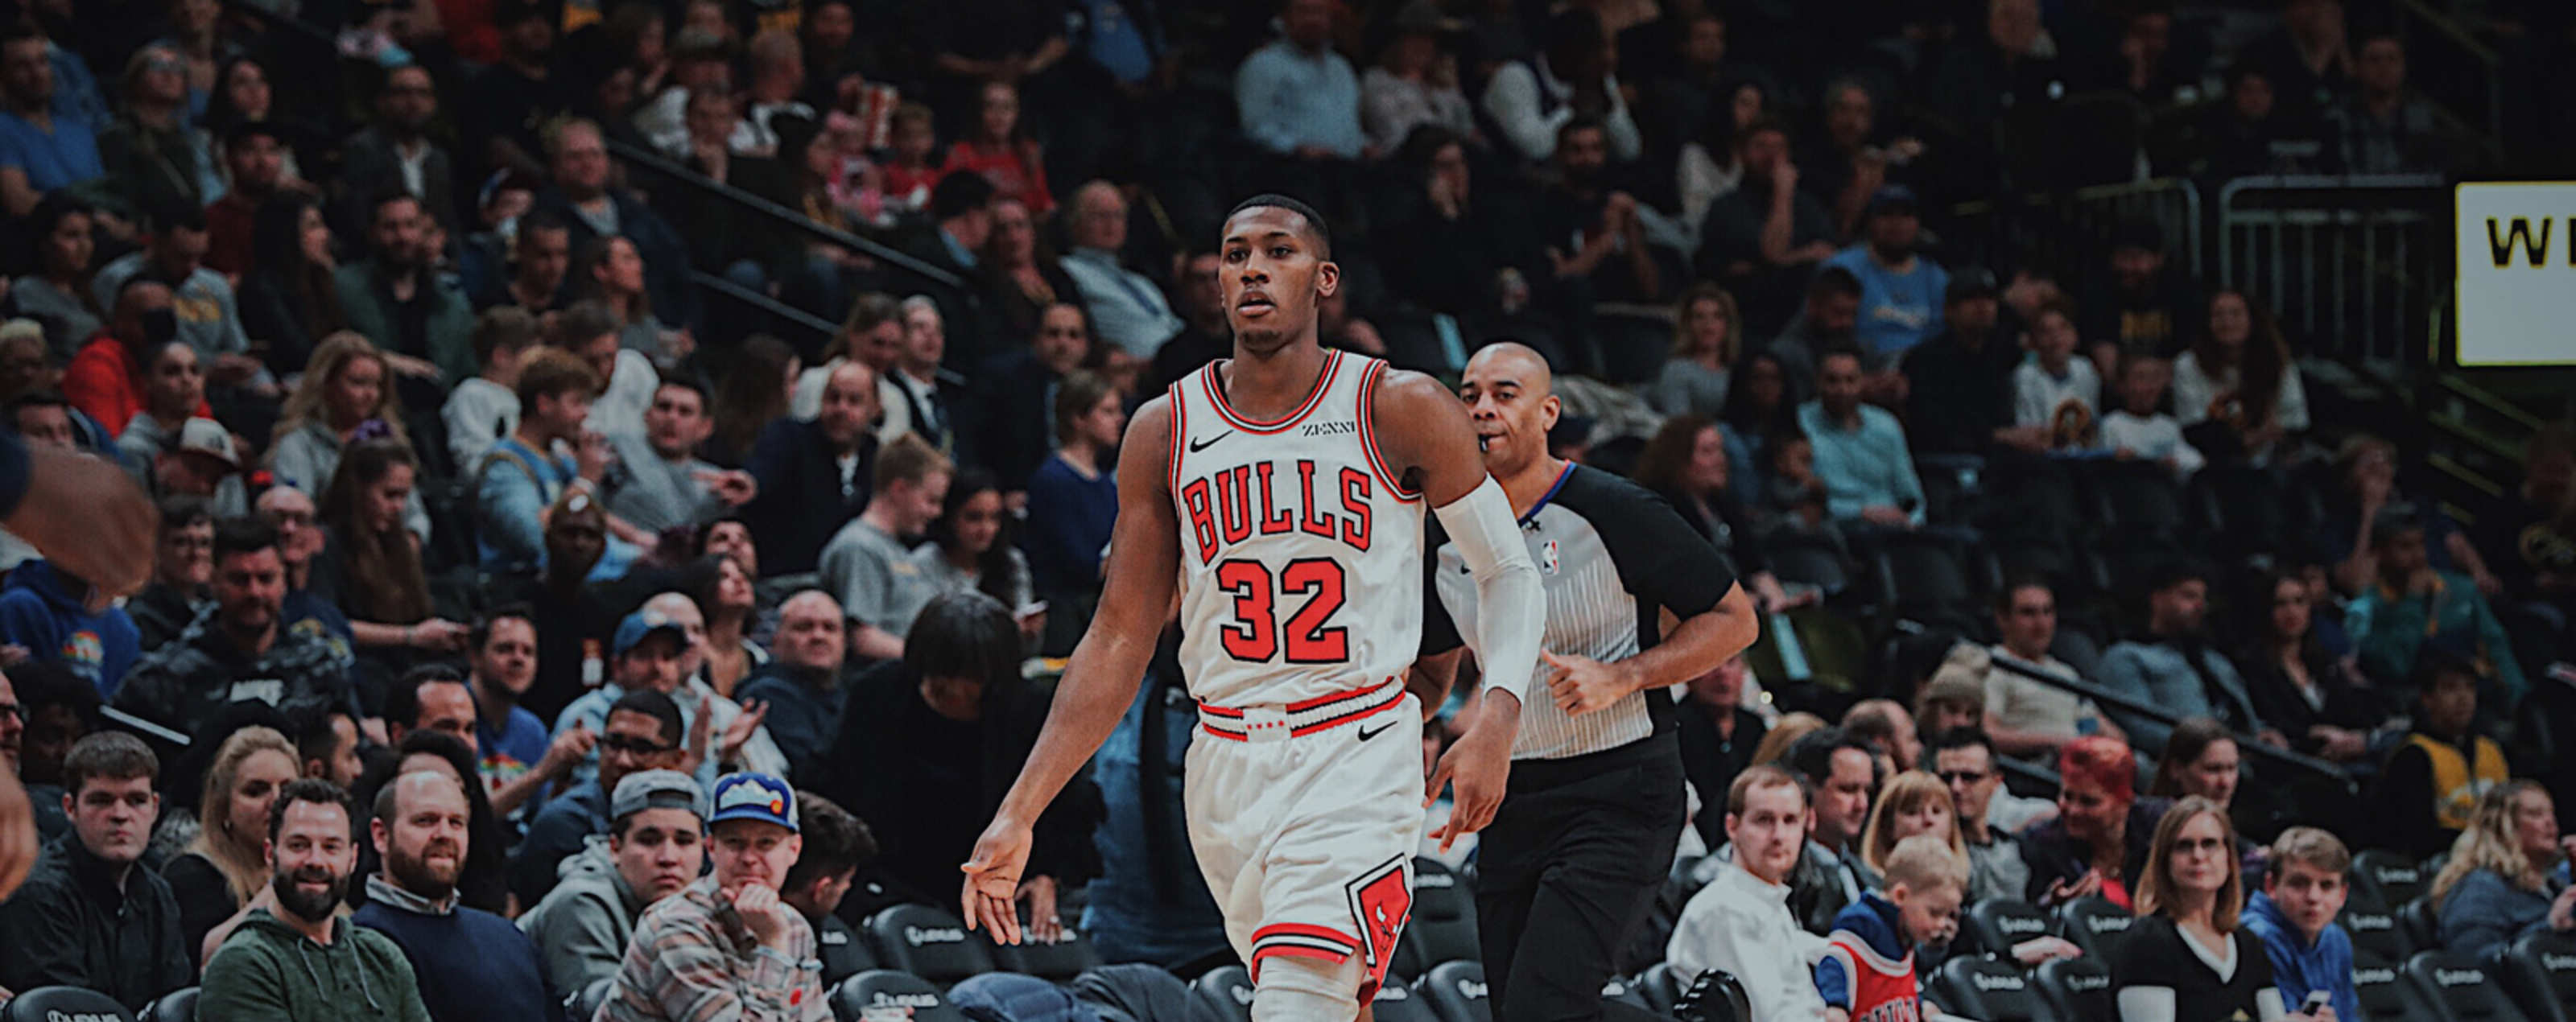 Kris Dunn dribbles the ball against the Denver Nuggets.